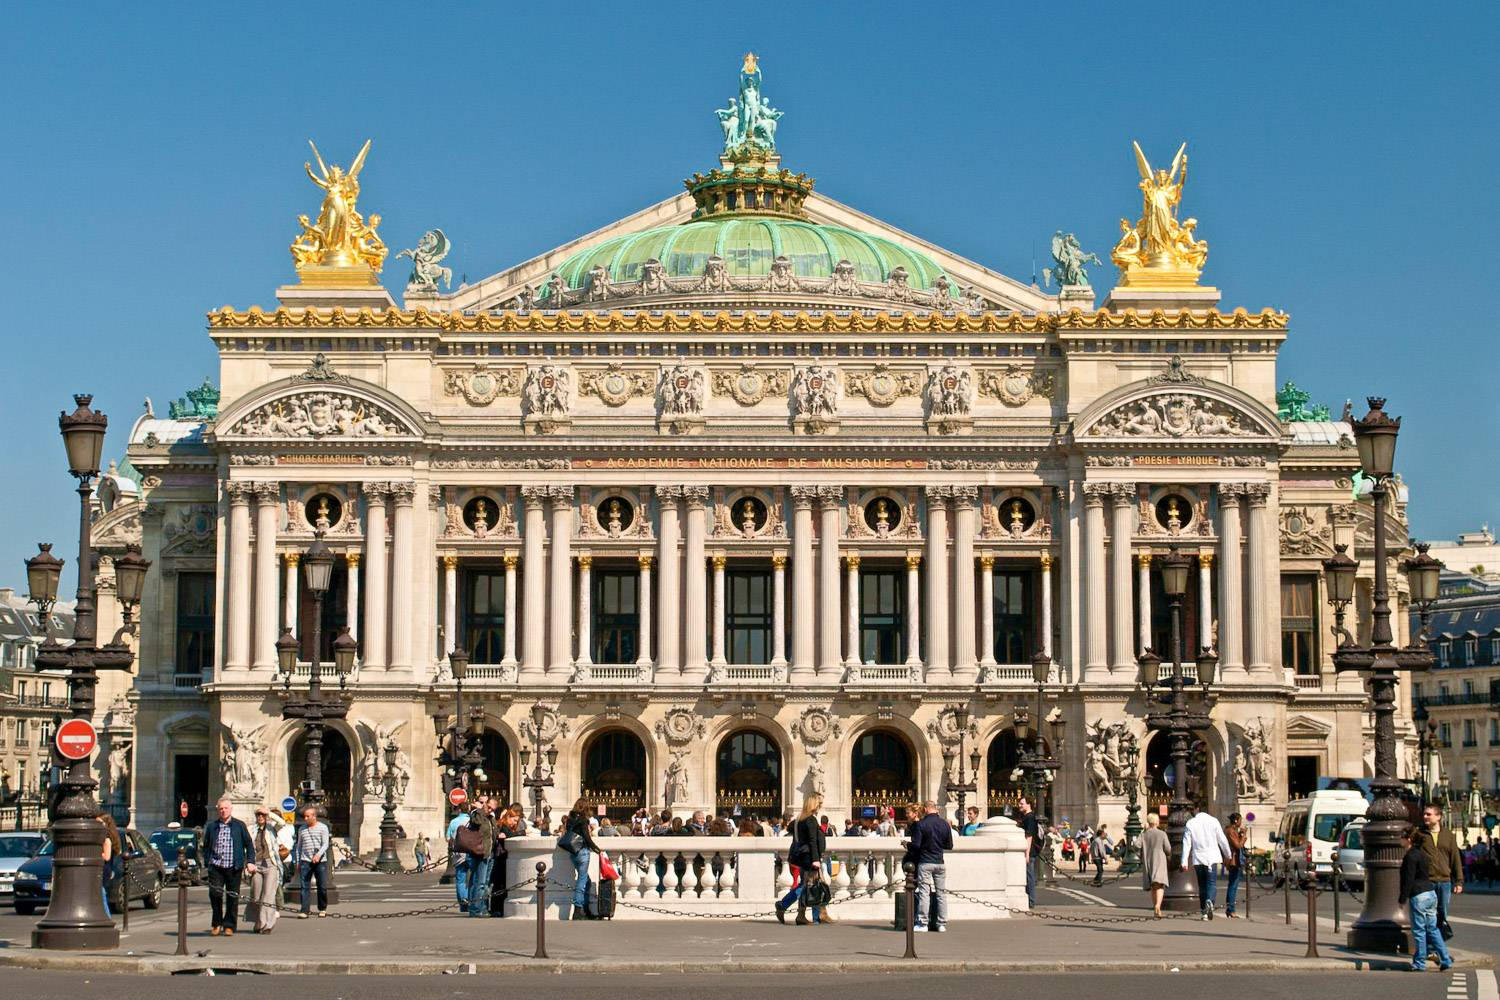 Photo of the Place de l'Opéra in Paris, with people located in front of the impressive Neo-Baroque Garnier Palace.